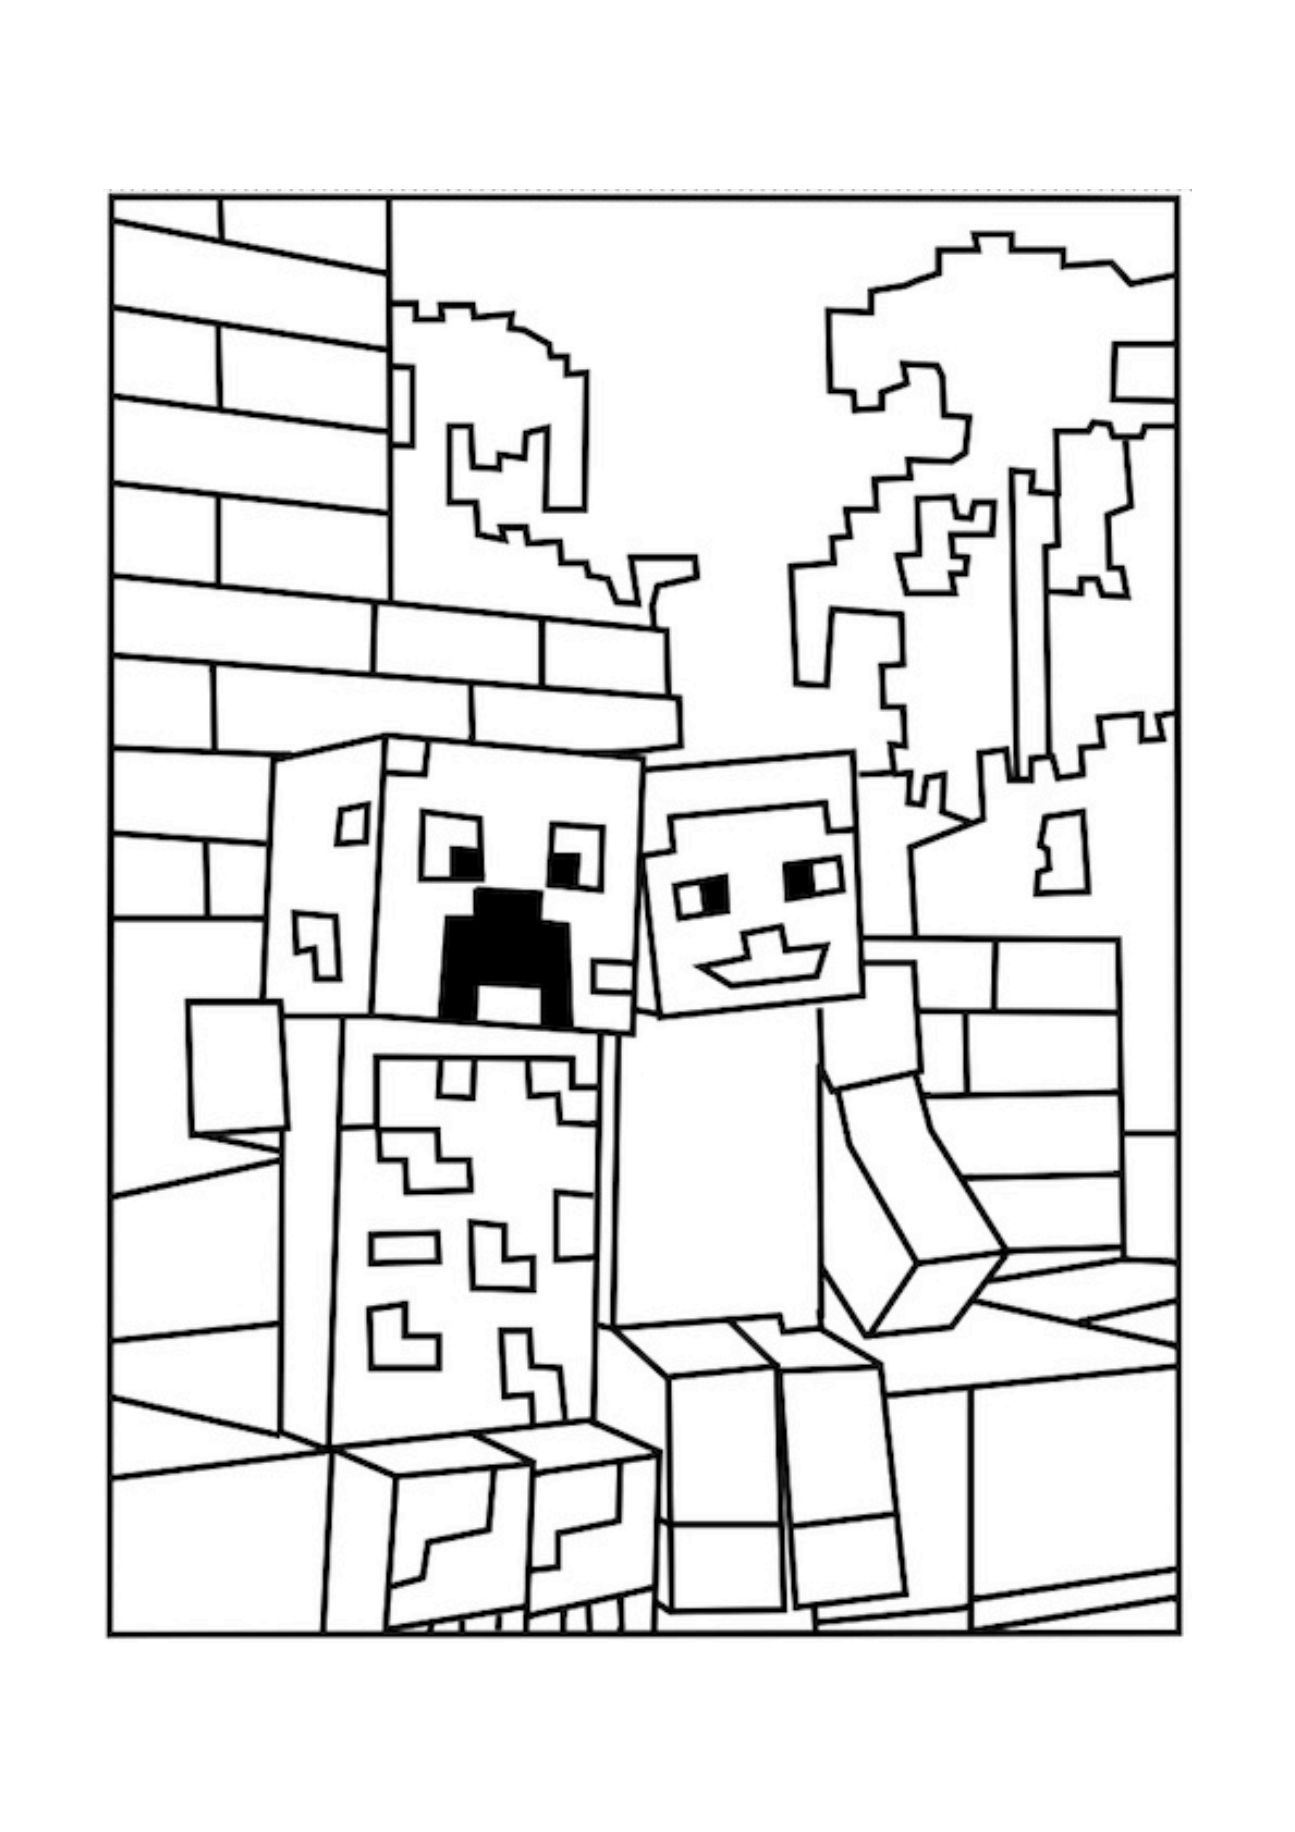 minecraft print out coloring pages - photo#45